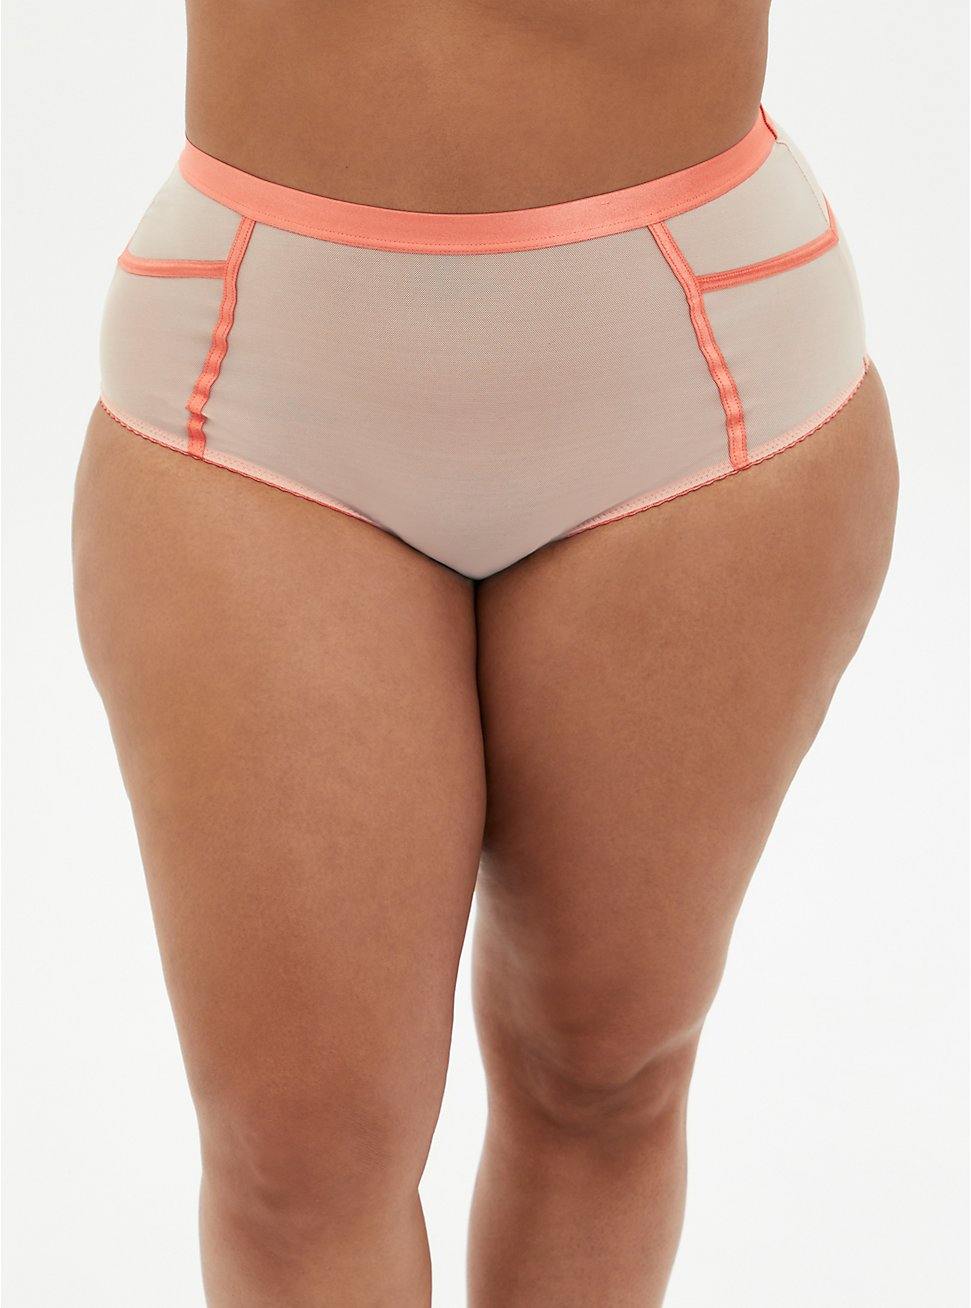 Dusty Coral Mesh High Waist Panty, DESERT FLORAL, hi-res